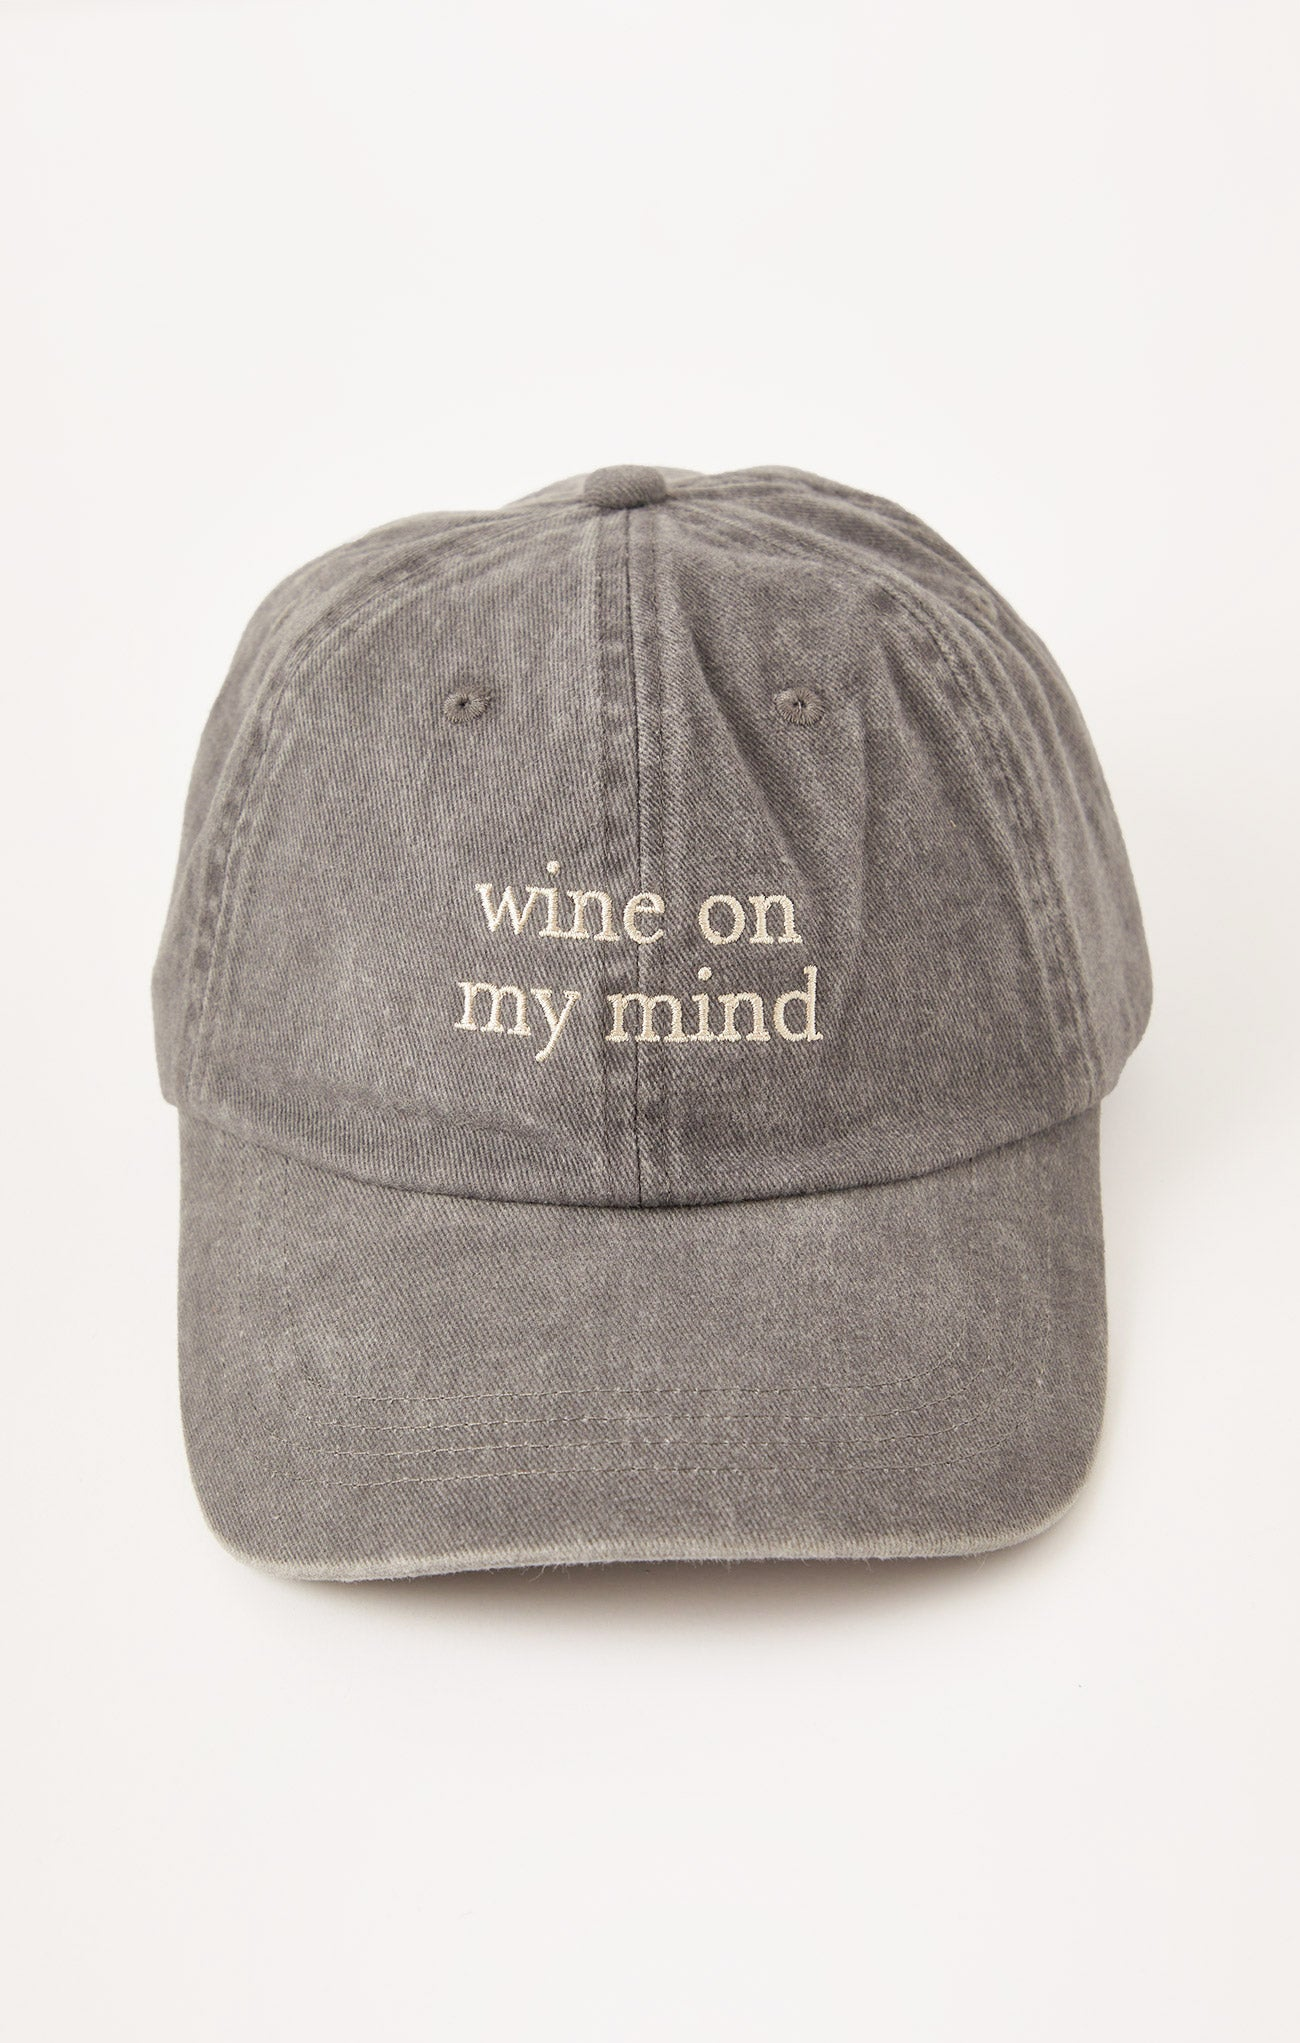 Accessories Wine On My Mind Hat Wine On My Mind Hat